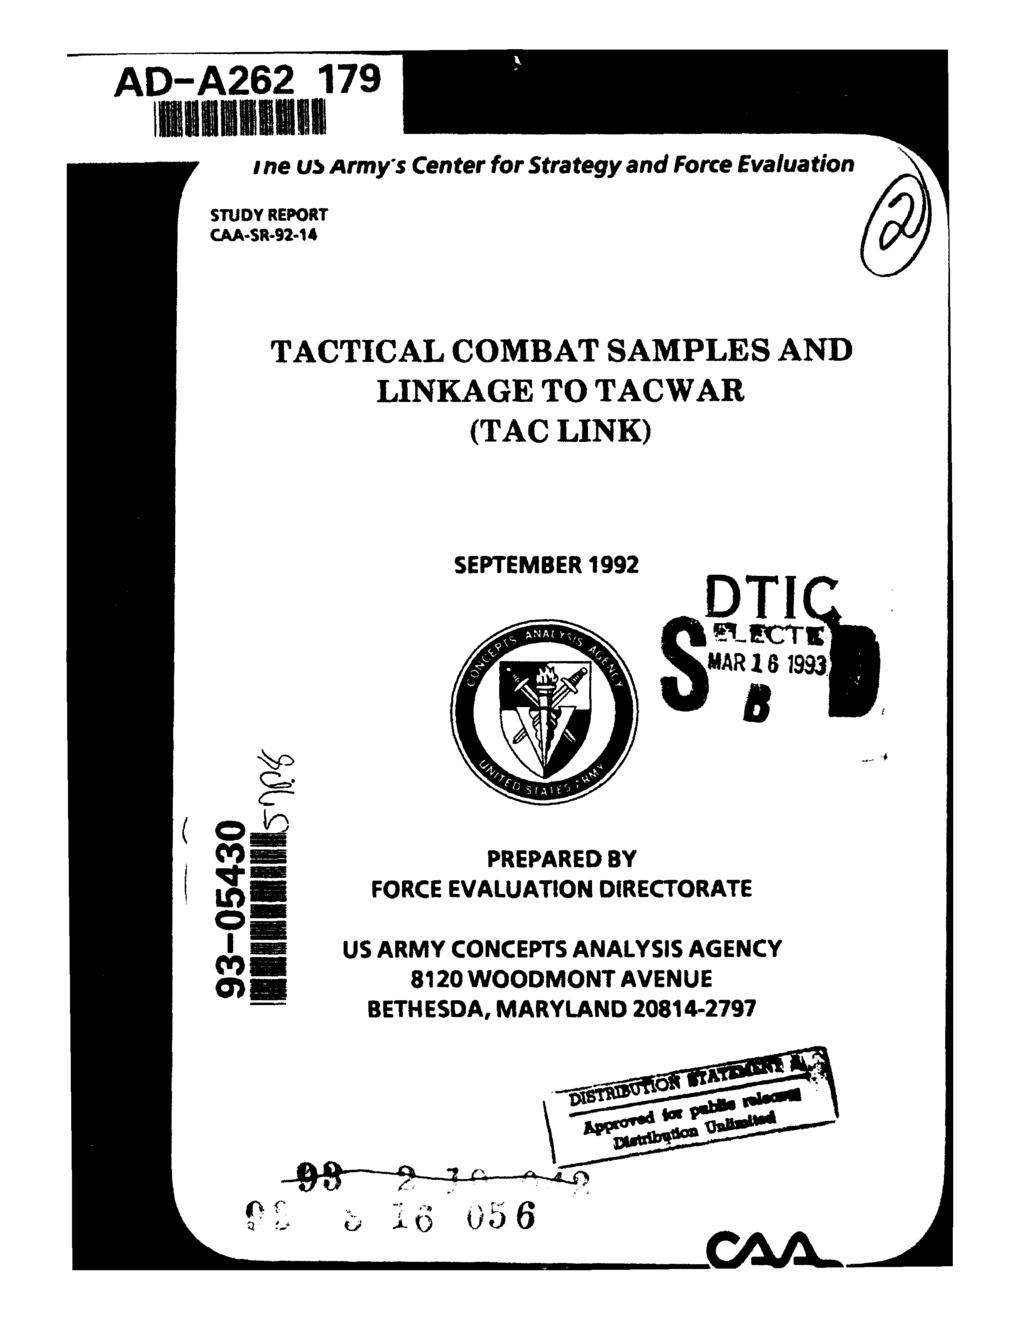 AD-A262 179 ine u5 Army*s Center for Strategy and Force Evaluation STUDY REPORT CAA-SR-92-14 TACTICAL COMBAT SAMPLES AND LINKAGE TO TACWAR (TAC LINK)